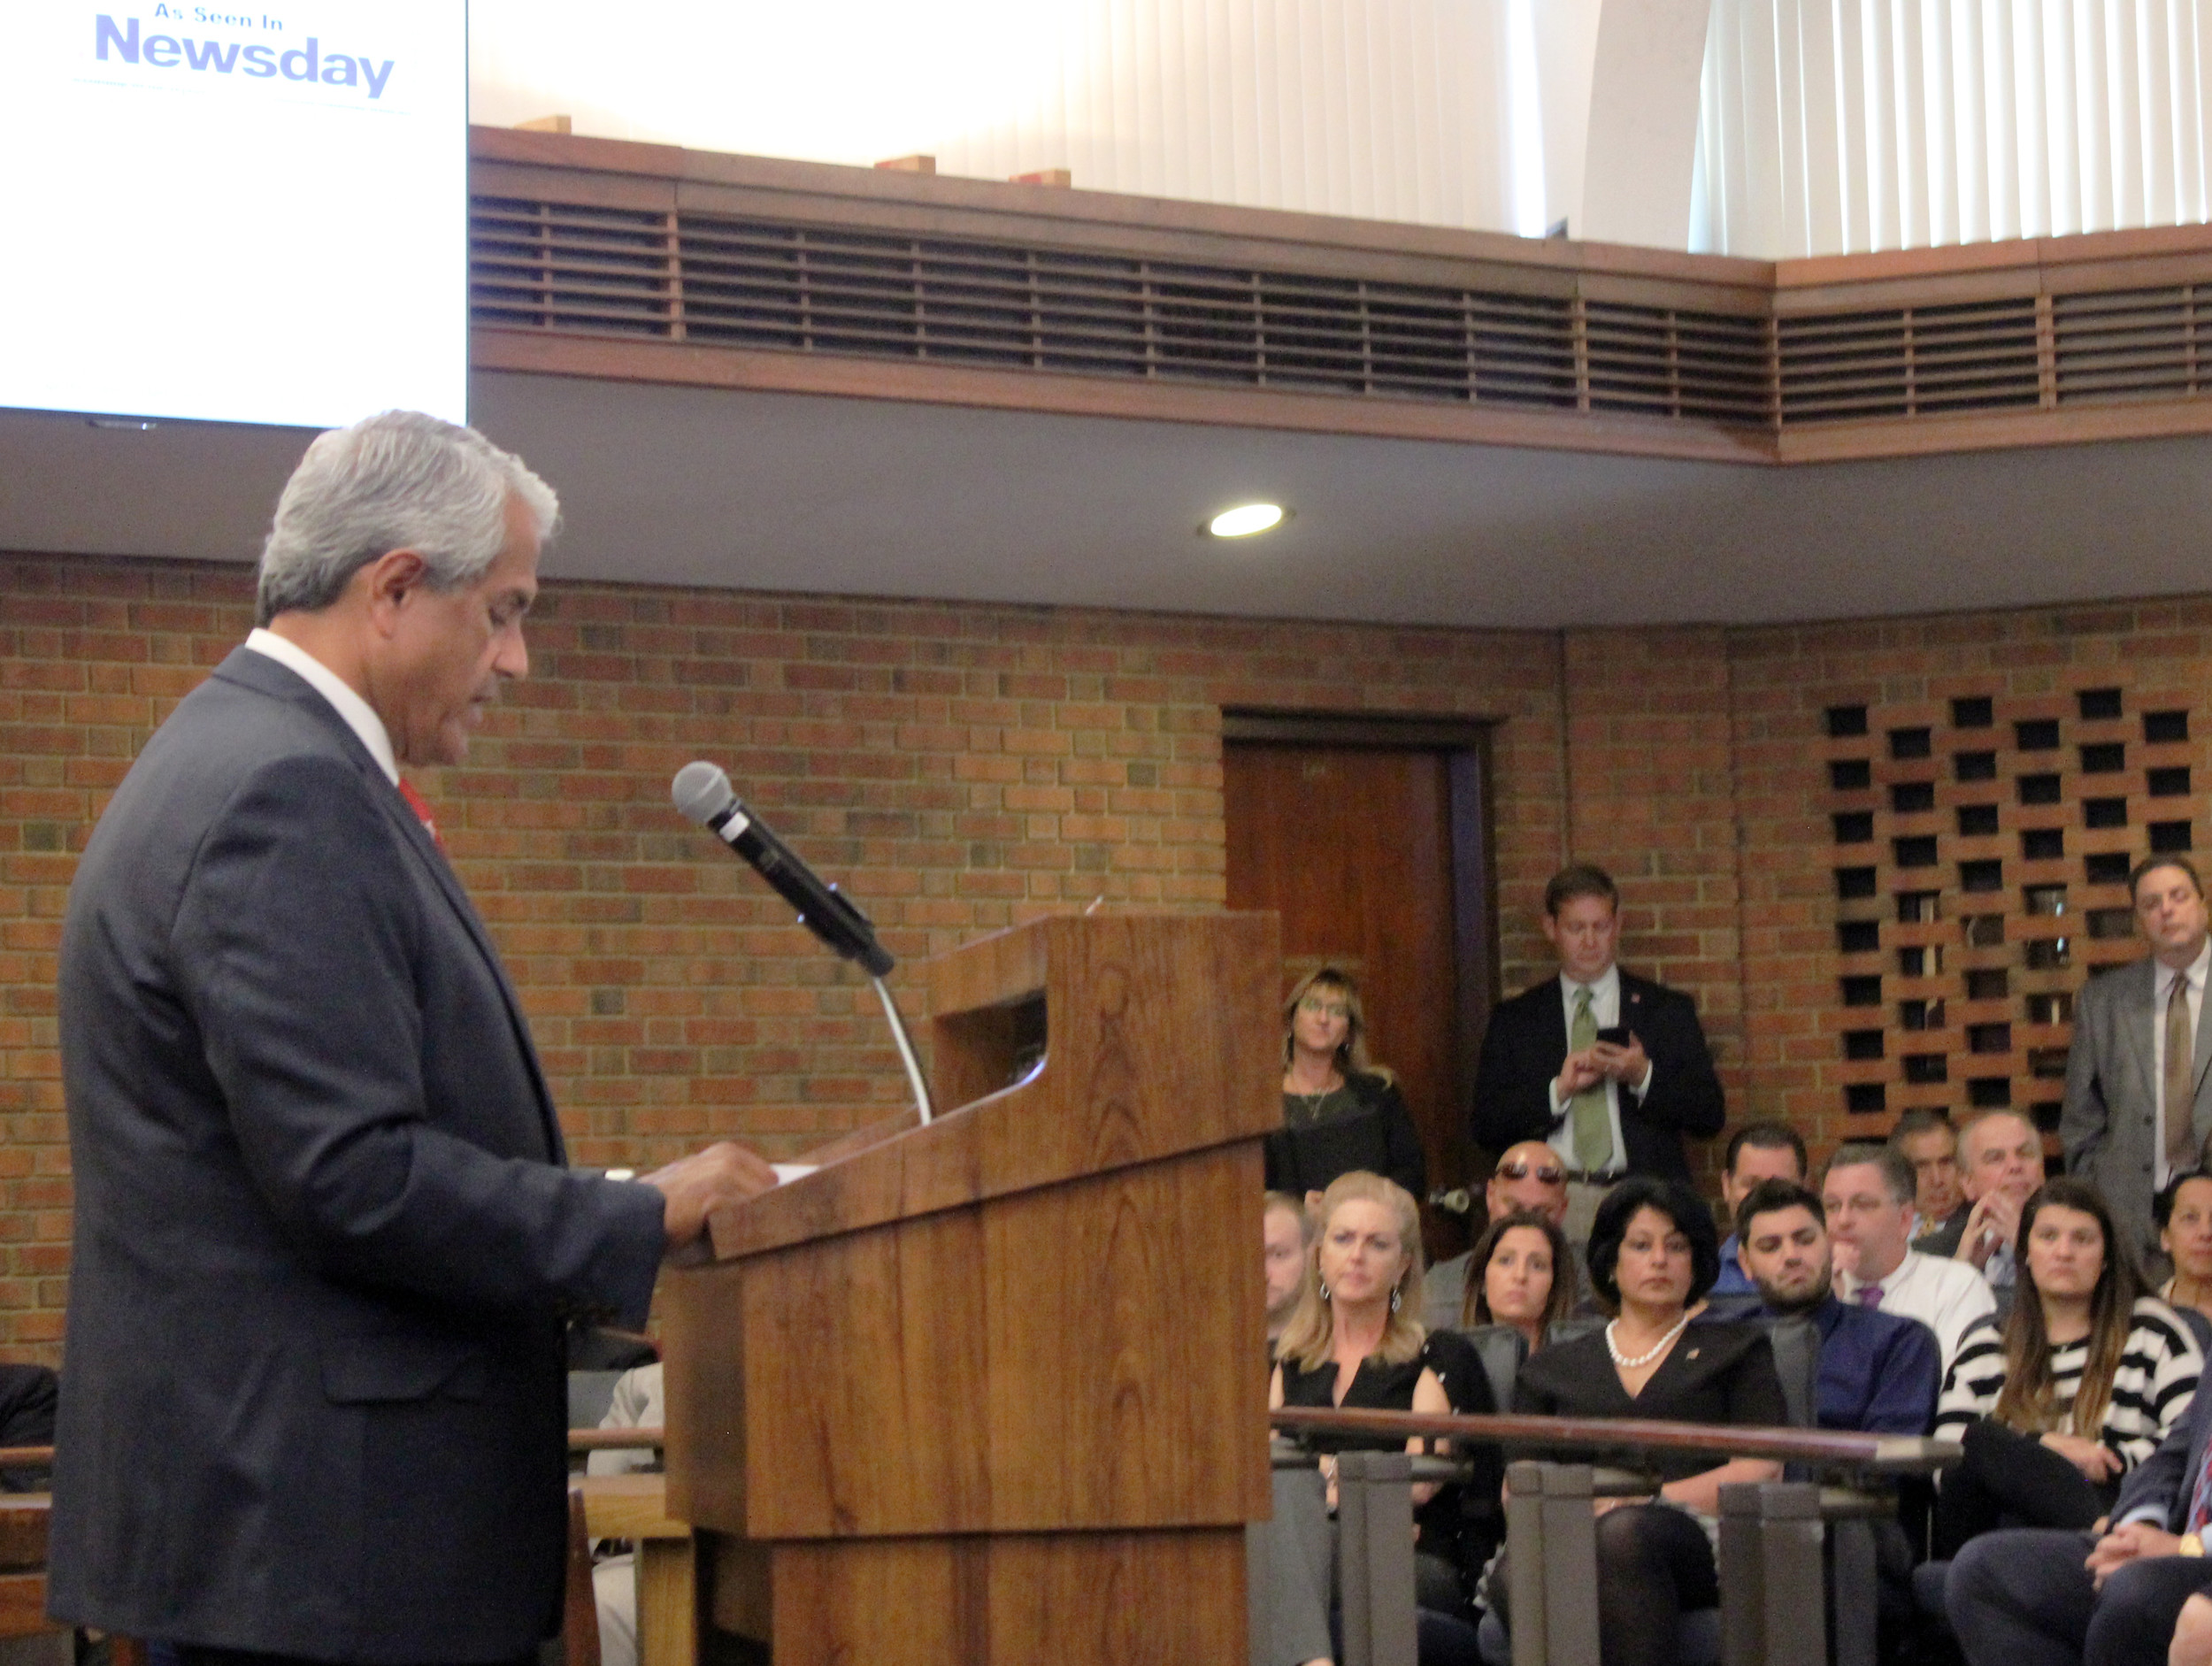 Town of Hempstead Supervisor Anthony Santino delivered his State of the Town address on Sept. 13, touting the town's financial achievements since he took office nearly two years ago.